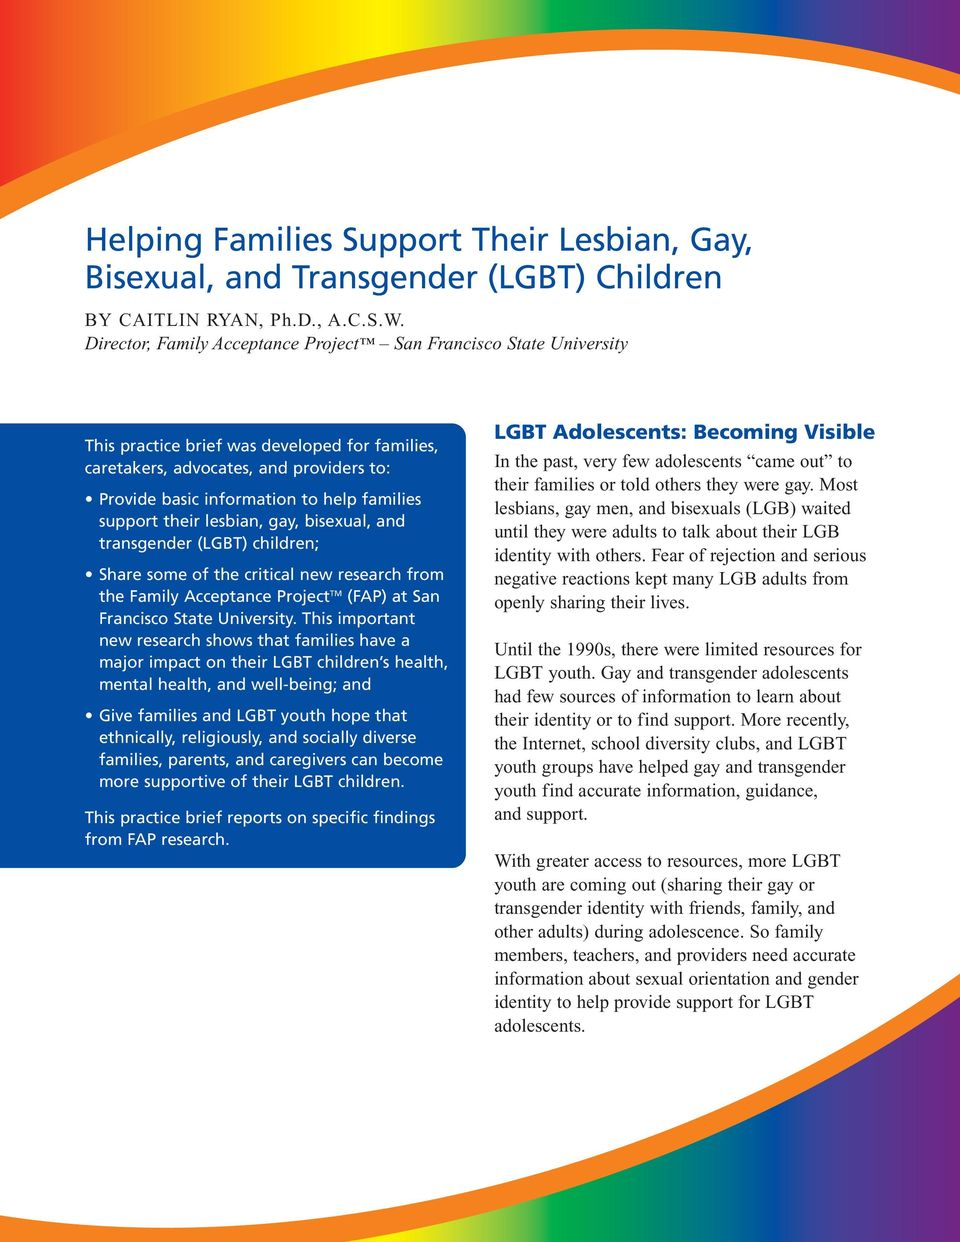 support their lesbian, gay, bisexual, and transgender (LGBT) children; Share some of the critical new research from the Family Acceptance Project TM (FAP) at San Francisco State University.